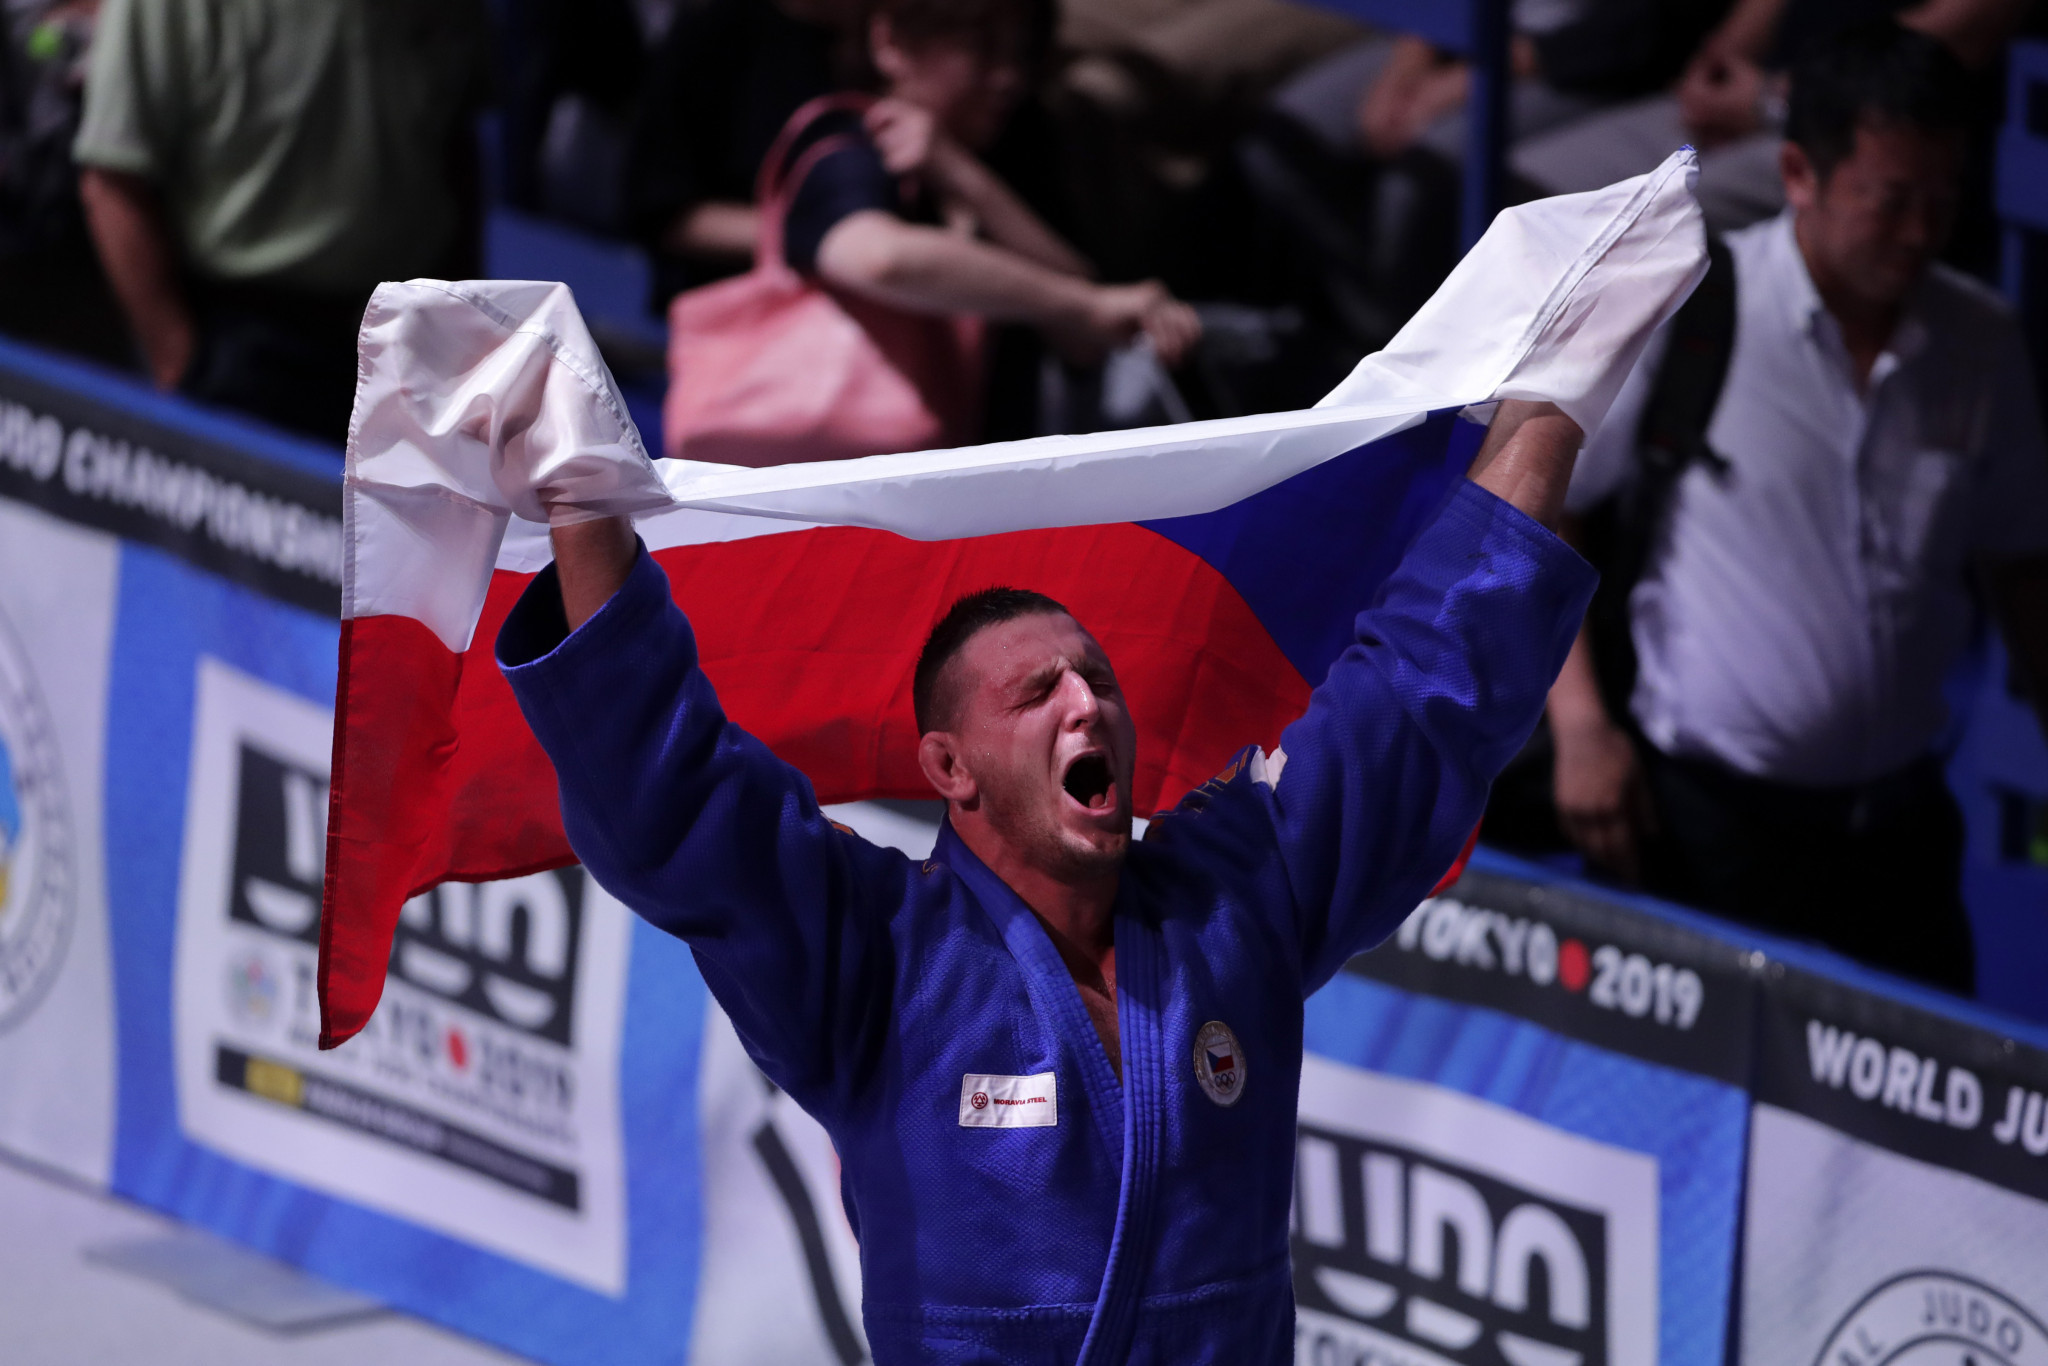 Czech judo has not hosted the European Championships since 1991 ©Getty Images